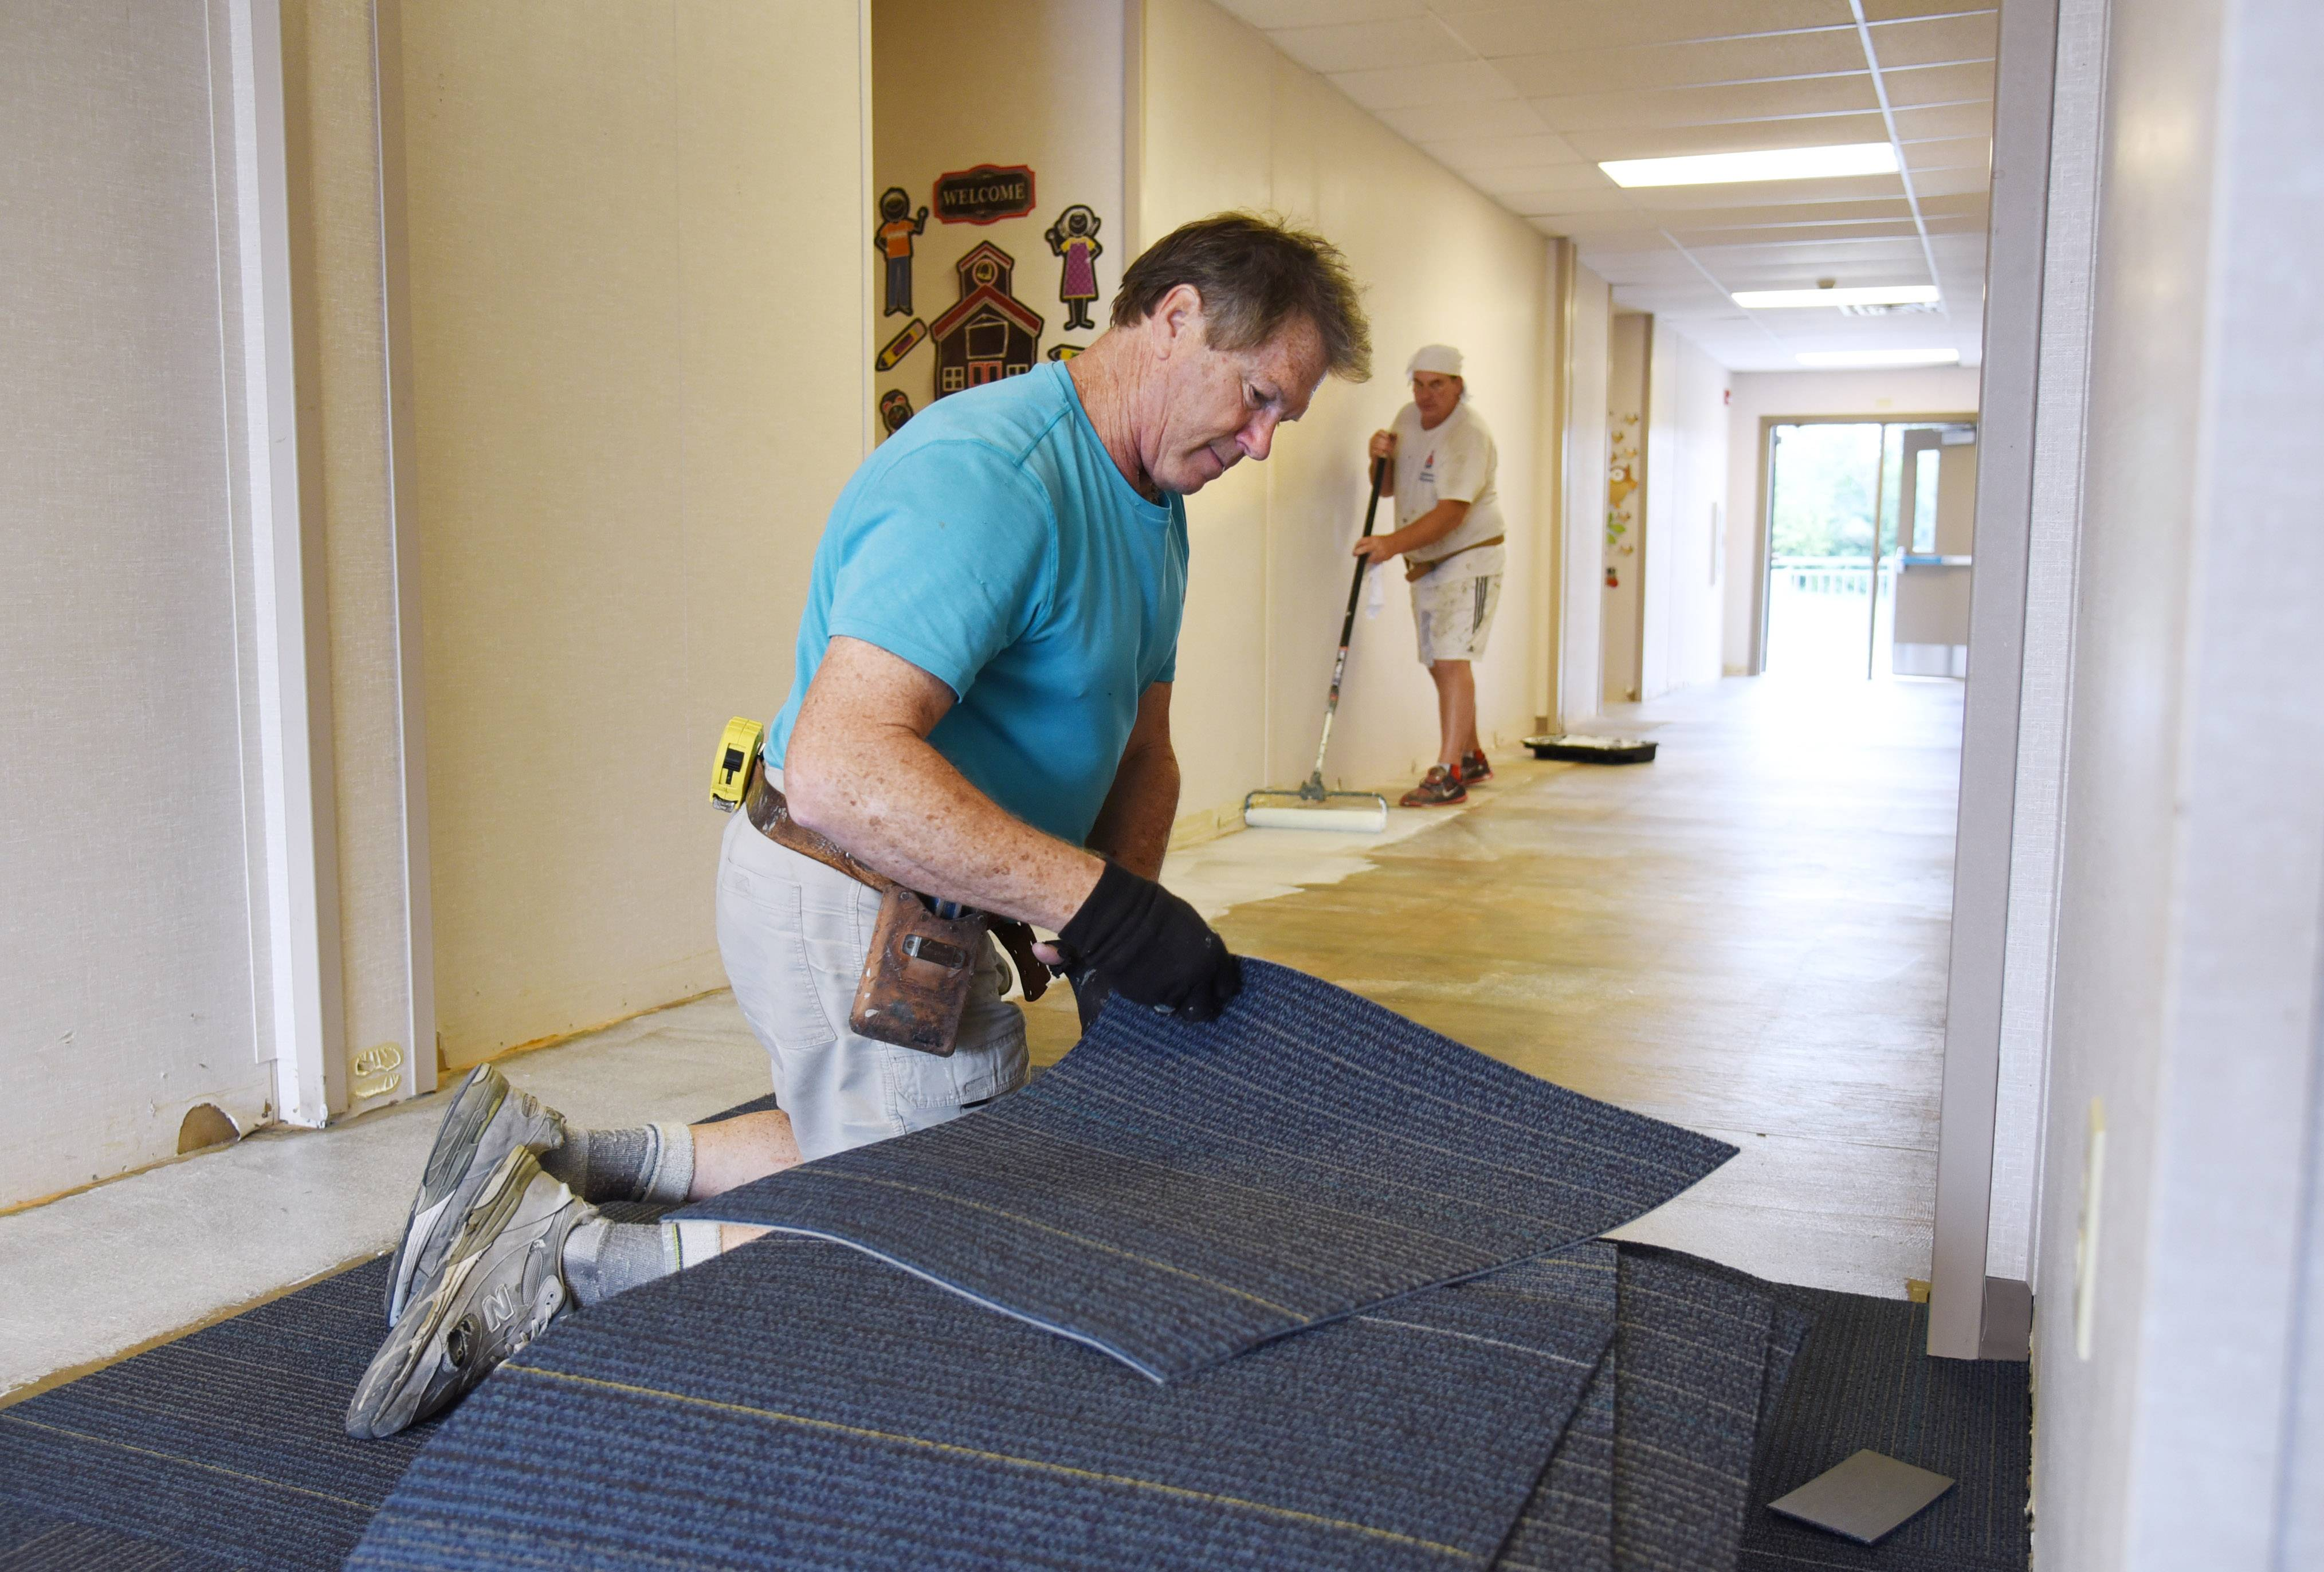 Mike Beier, left, and Mike Ulane of Prospect Heights' M & M Carpet, glue carpet squares in the hallway of the temporary mobile classroom building behind Murphy Elementary School in Round Lake on Friday. The school is set to open Monday's after it was damaged by flooding last month.